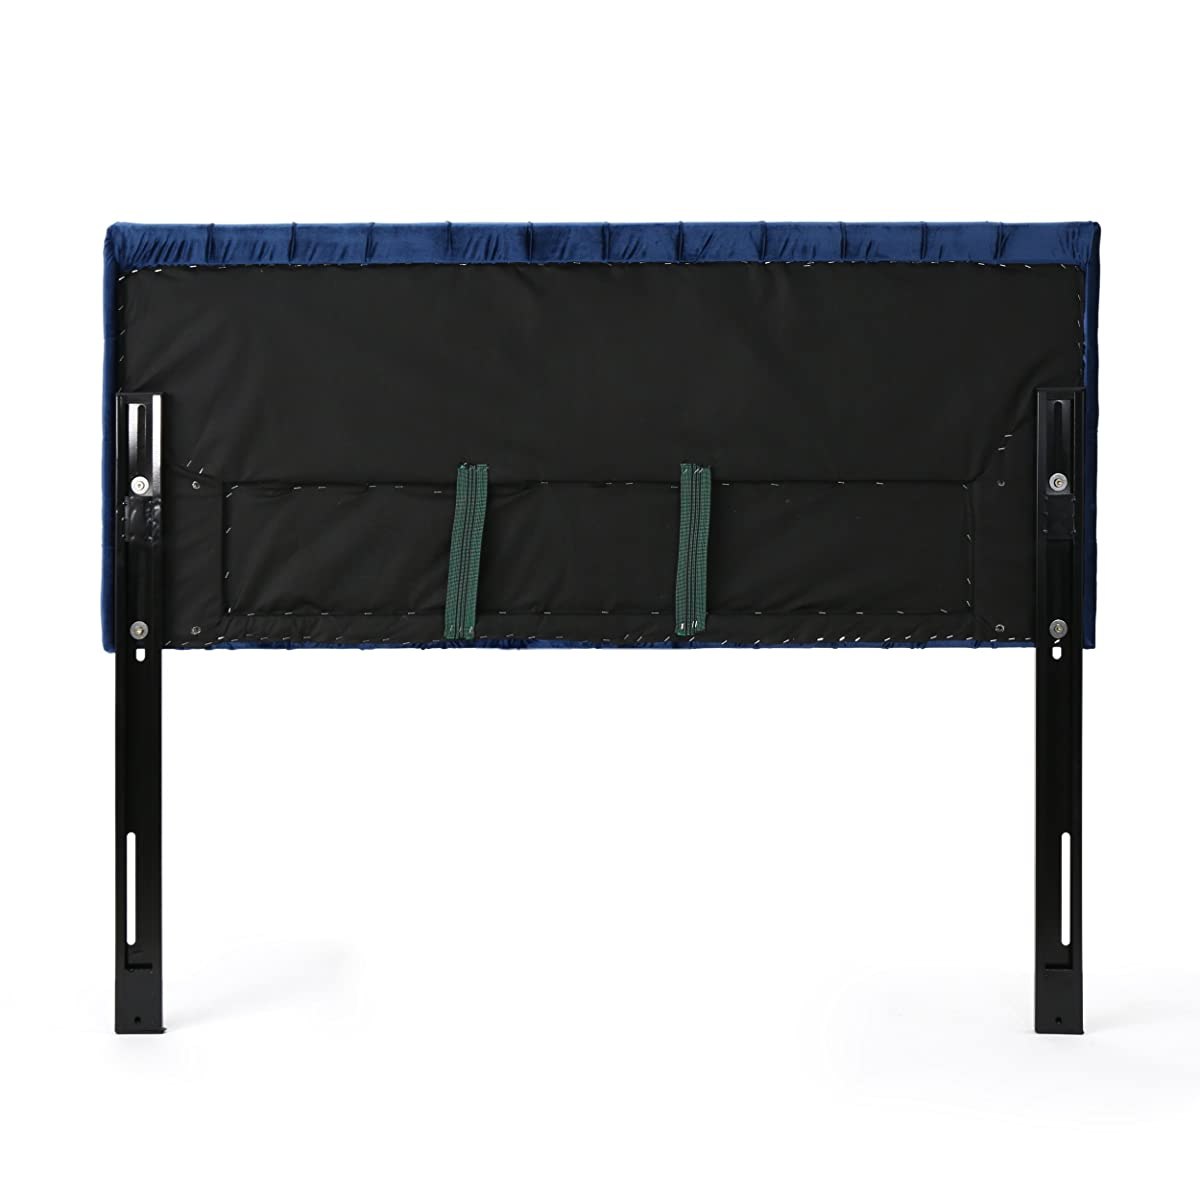 Christopher Knight Home 303582 Jezebel Headboard, Navy Blue and Black Steel